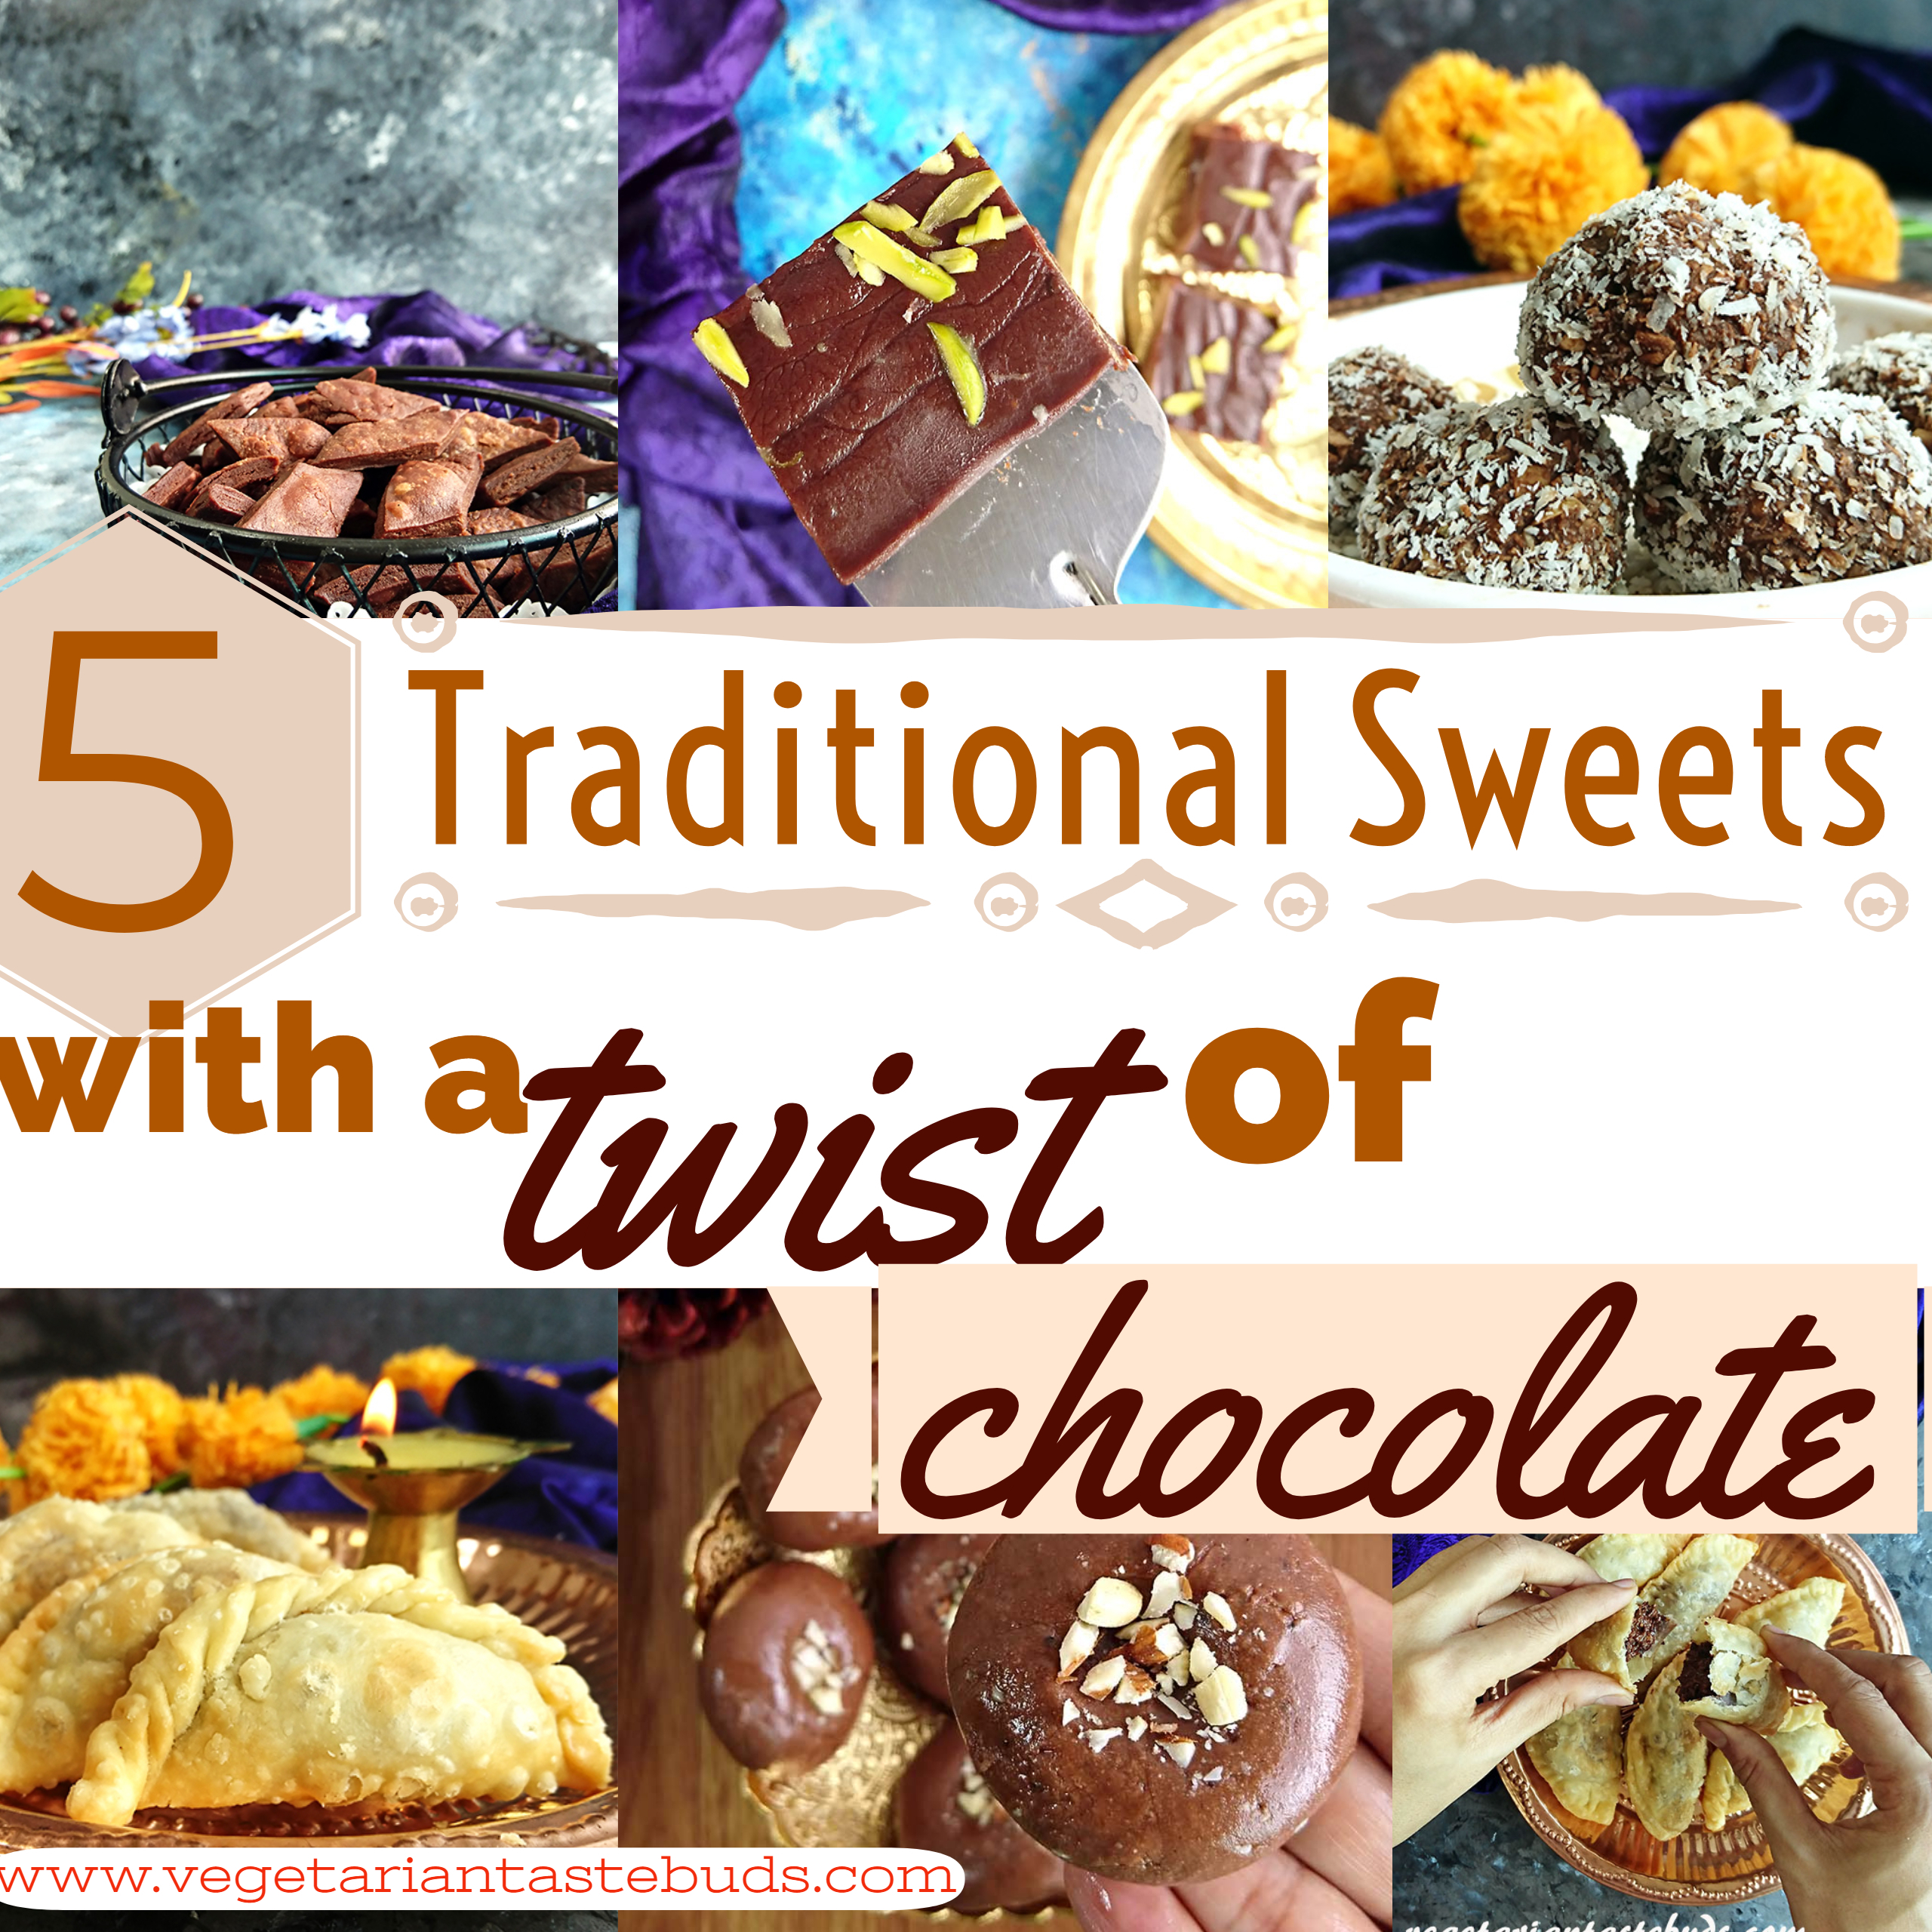 5 Traditional Sweets with a twist of chocolate | diwali special chocolate sweets | easy diwali sweets